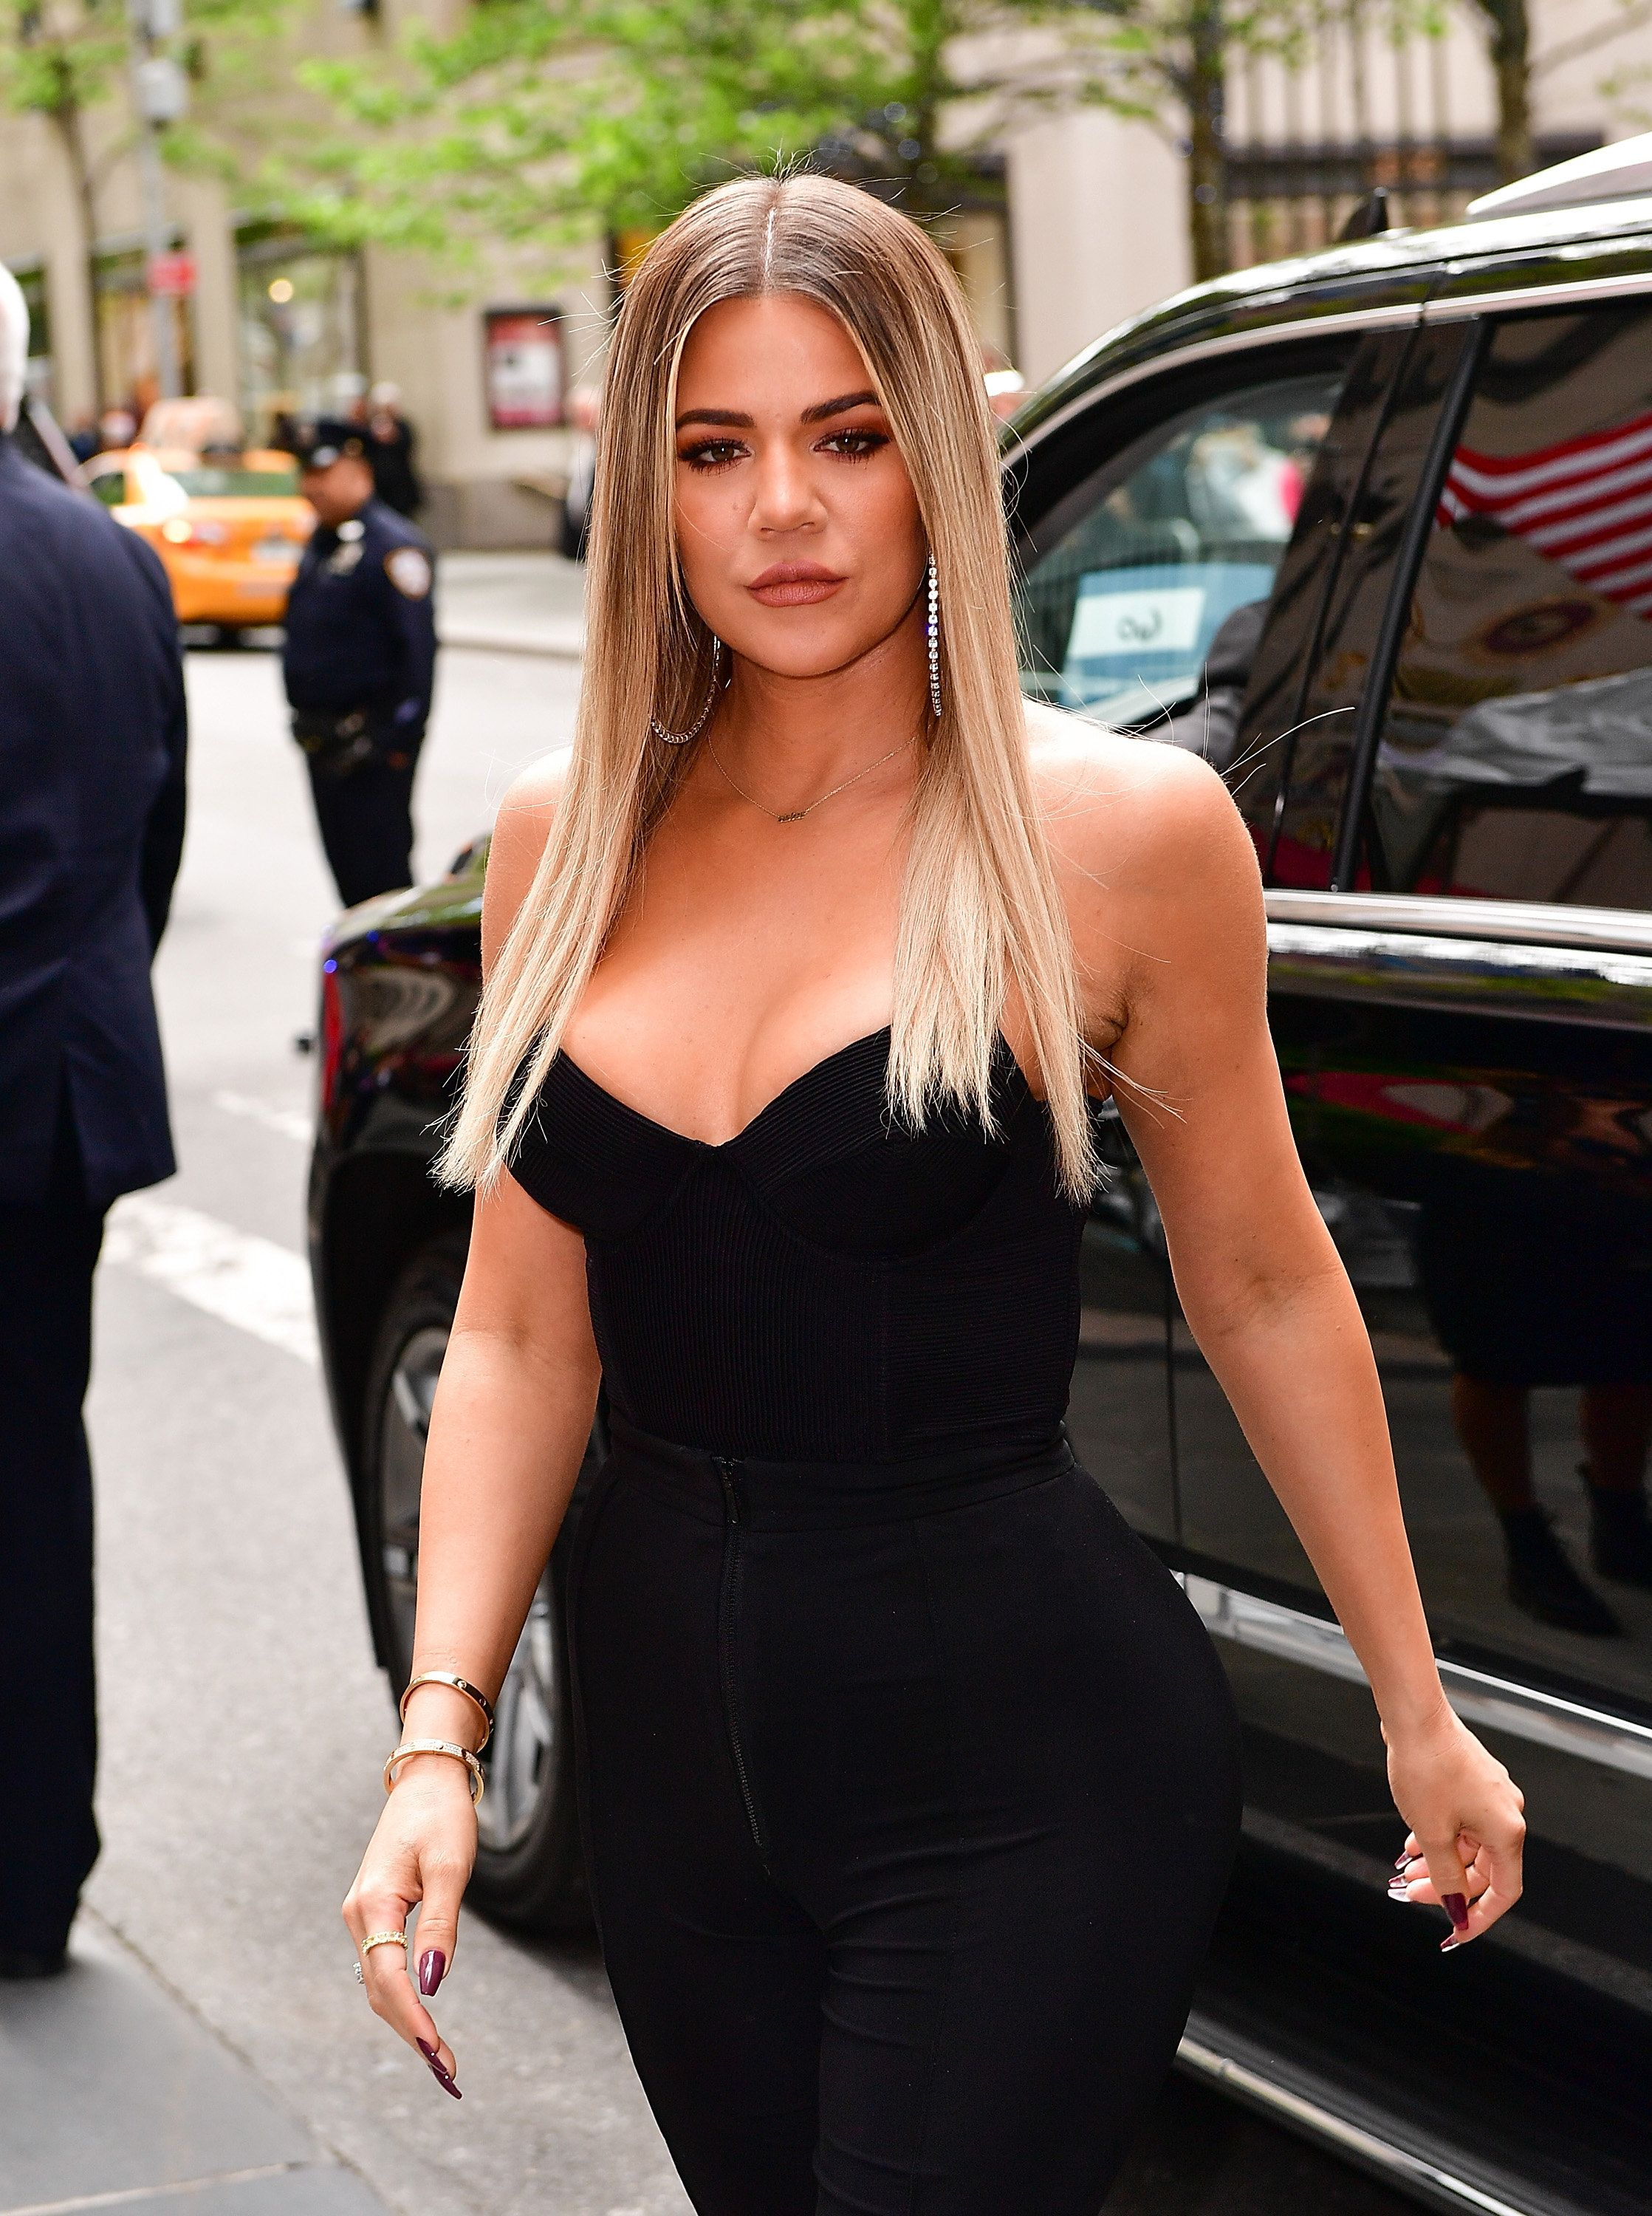 NEW YORK, NY - MAY 15:  Khloe Kardashian arrives at the 2017 NBCUniversal Upfront at Radio City Music Hall on May 15, 2017 in New York City.  (Photo by James Devaney/GC Images)